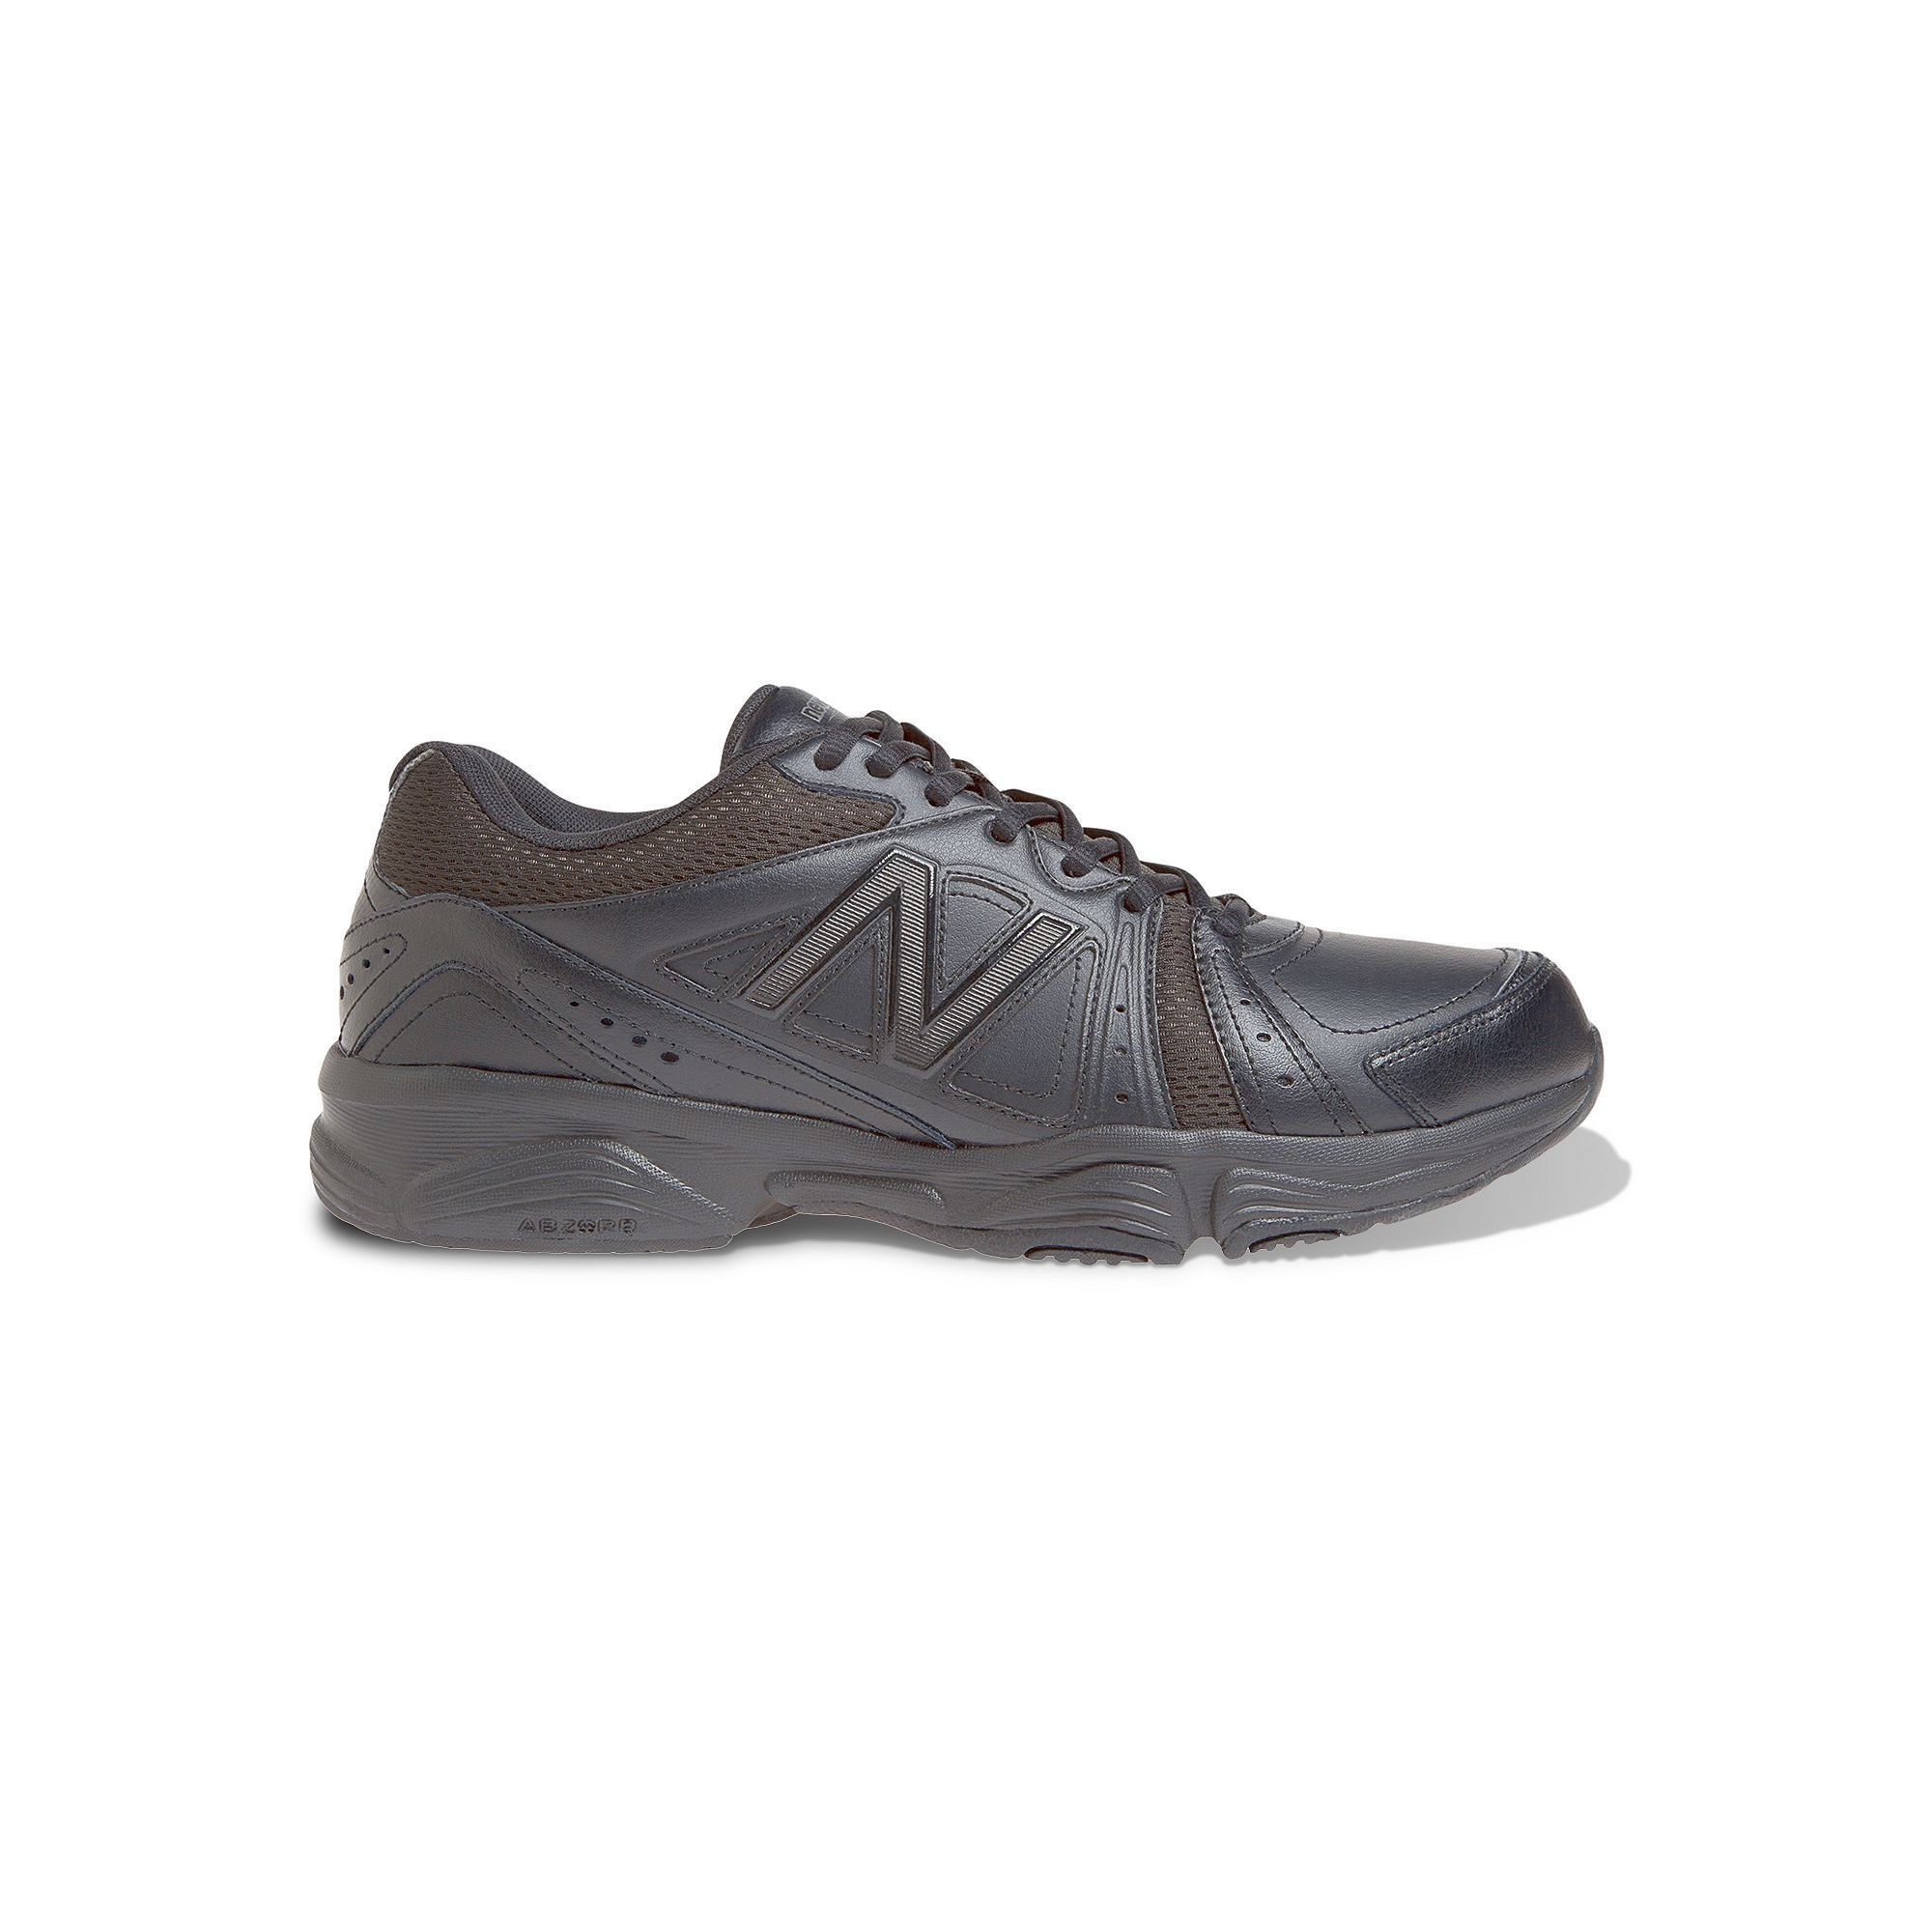 a069aa215978 New Balance 519 Men s Cross-Training Shoes